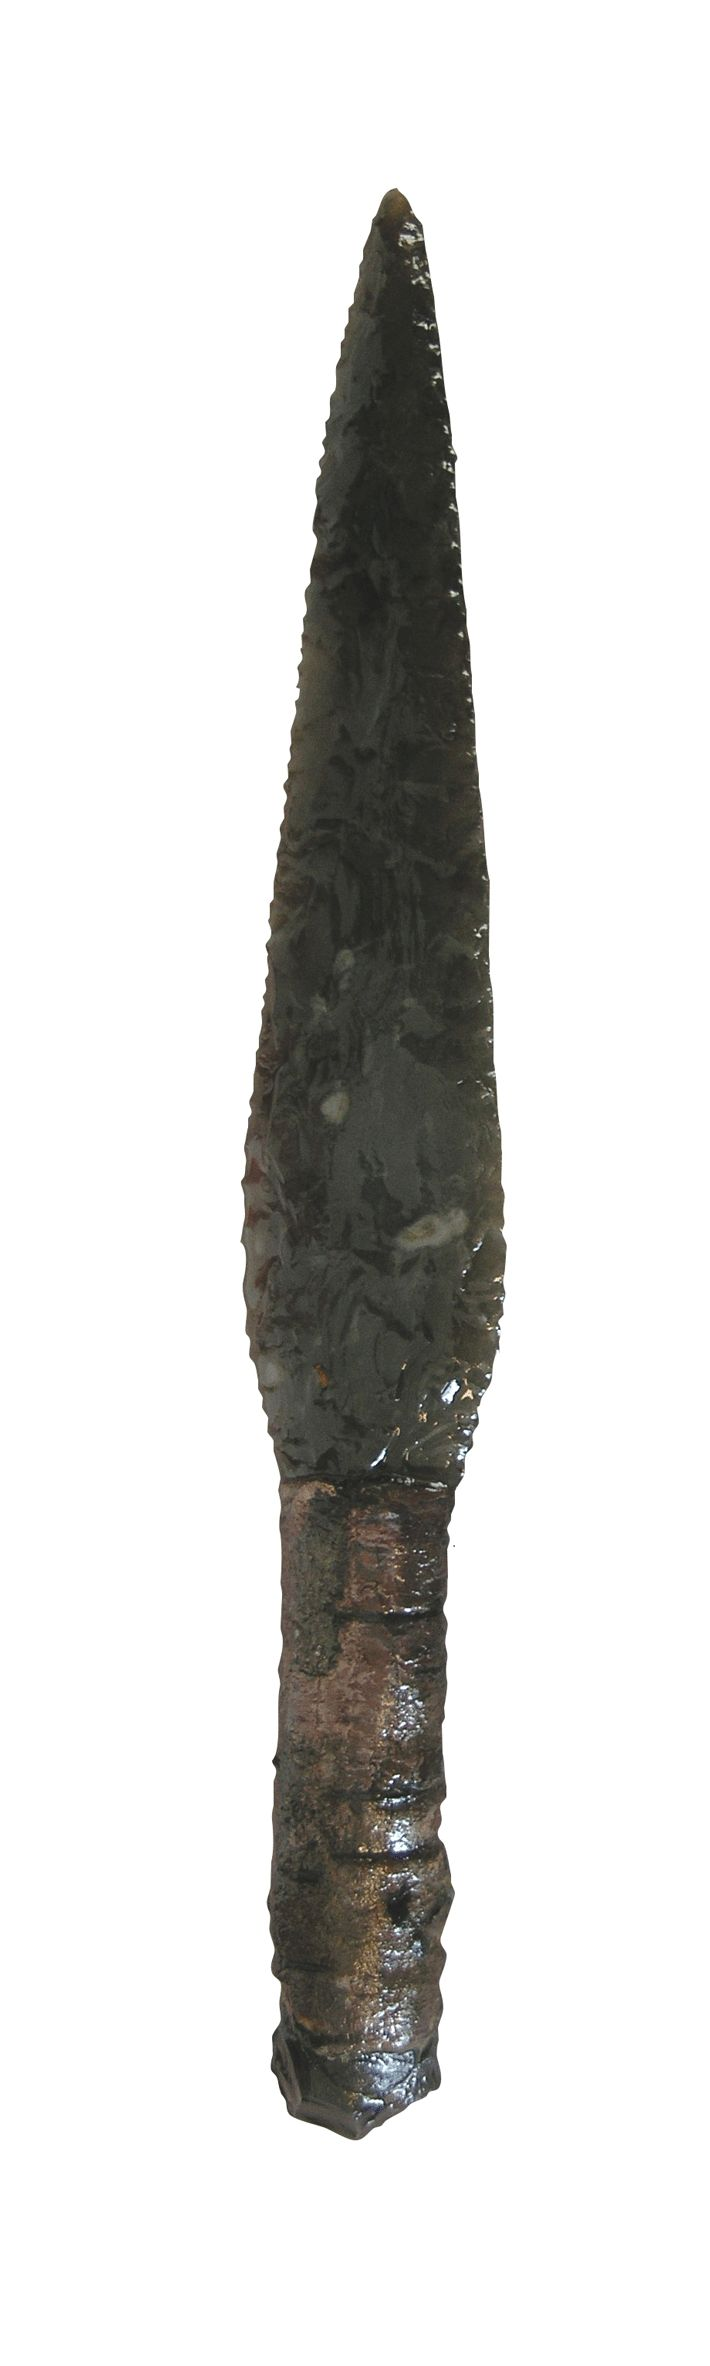 Early Bronze Age Dagger found made of Flint. The dagger is modeled after its bronze counterparts and demonstrates the skill that tool and weapon makers had developed during the preceding Neolithic period. The find is even more exciting, explains Rosendahl, because, in addition to the stone blade, the dagger's shaft and even the birch bark wrapped around the handle to give the user a better grip were preserved after several thousand years.